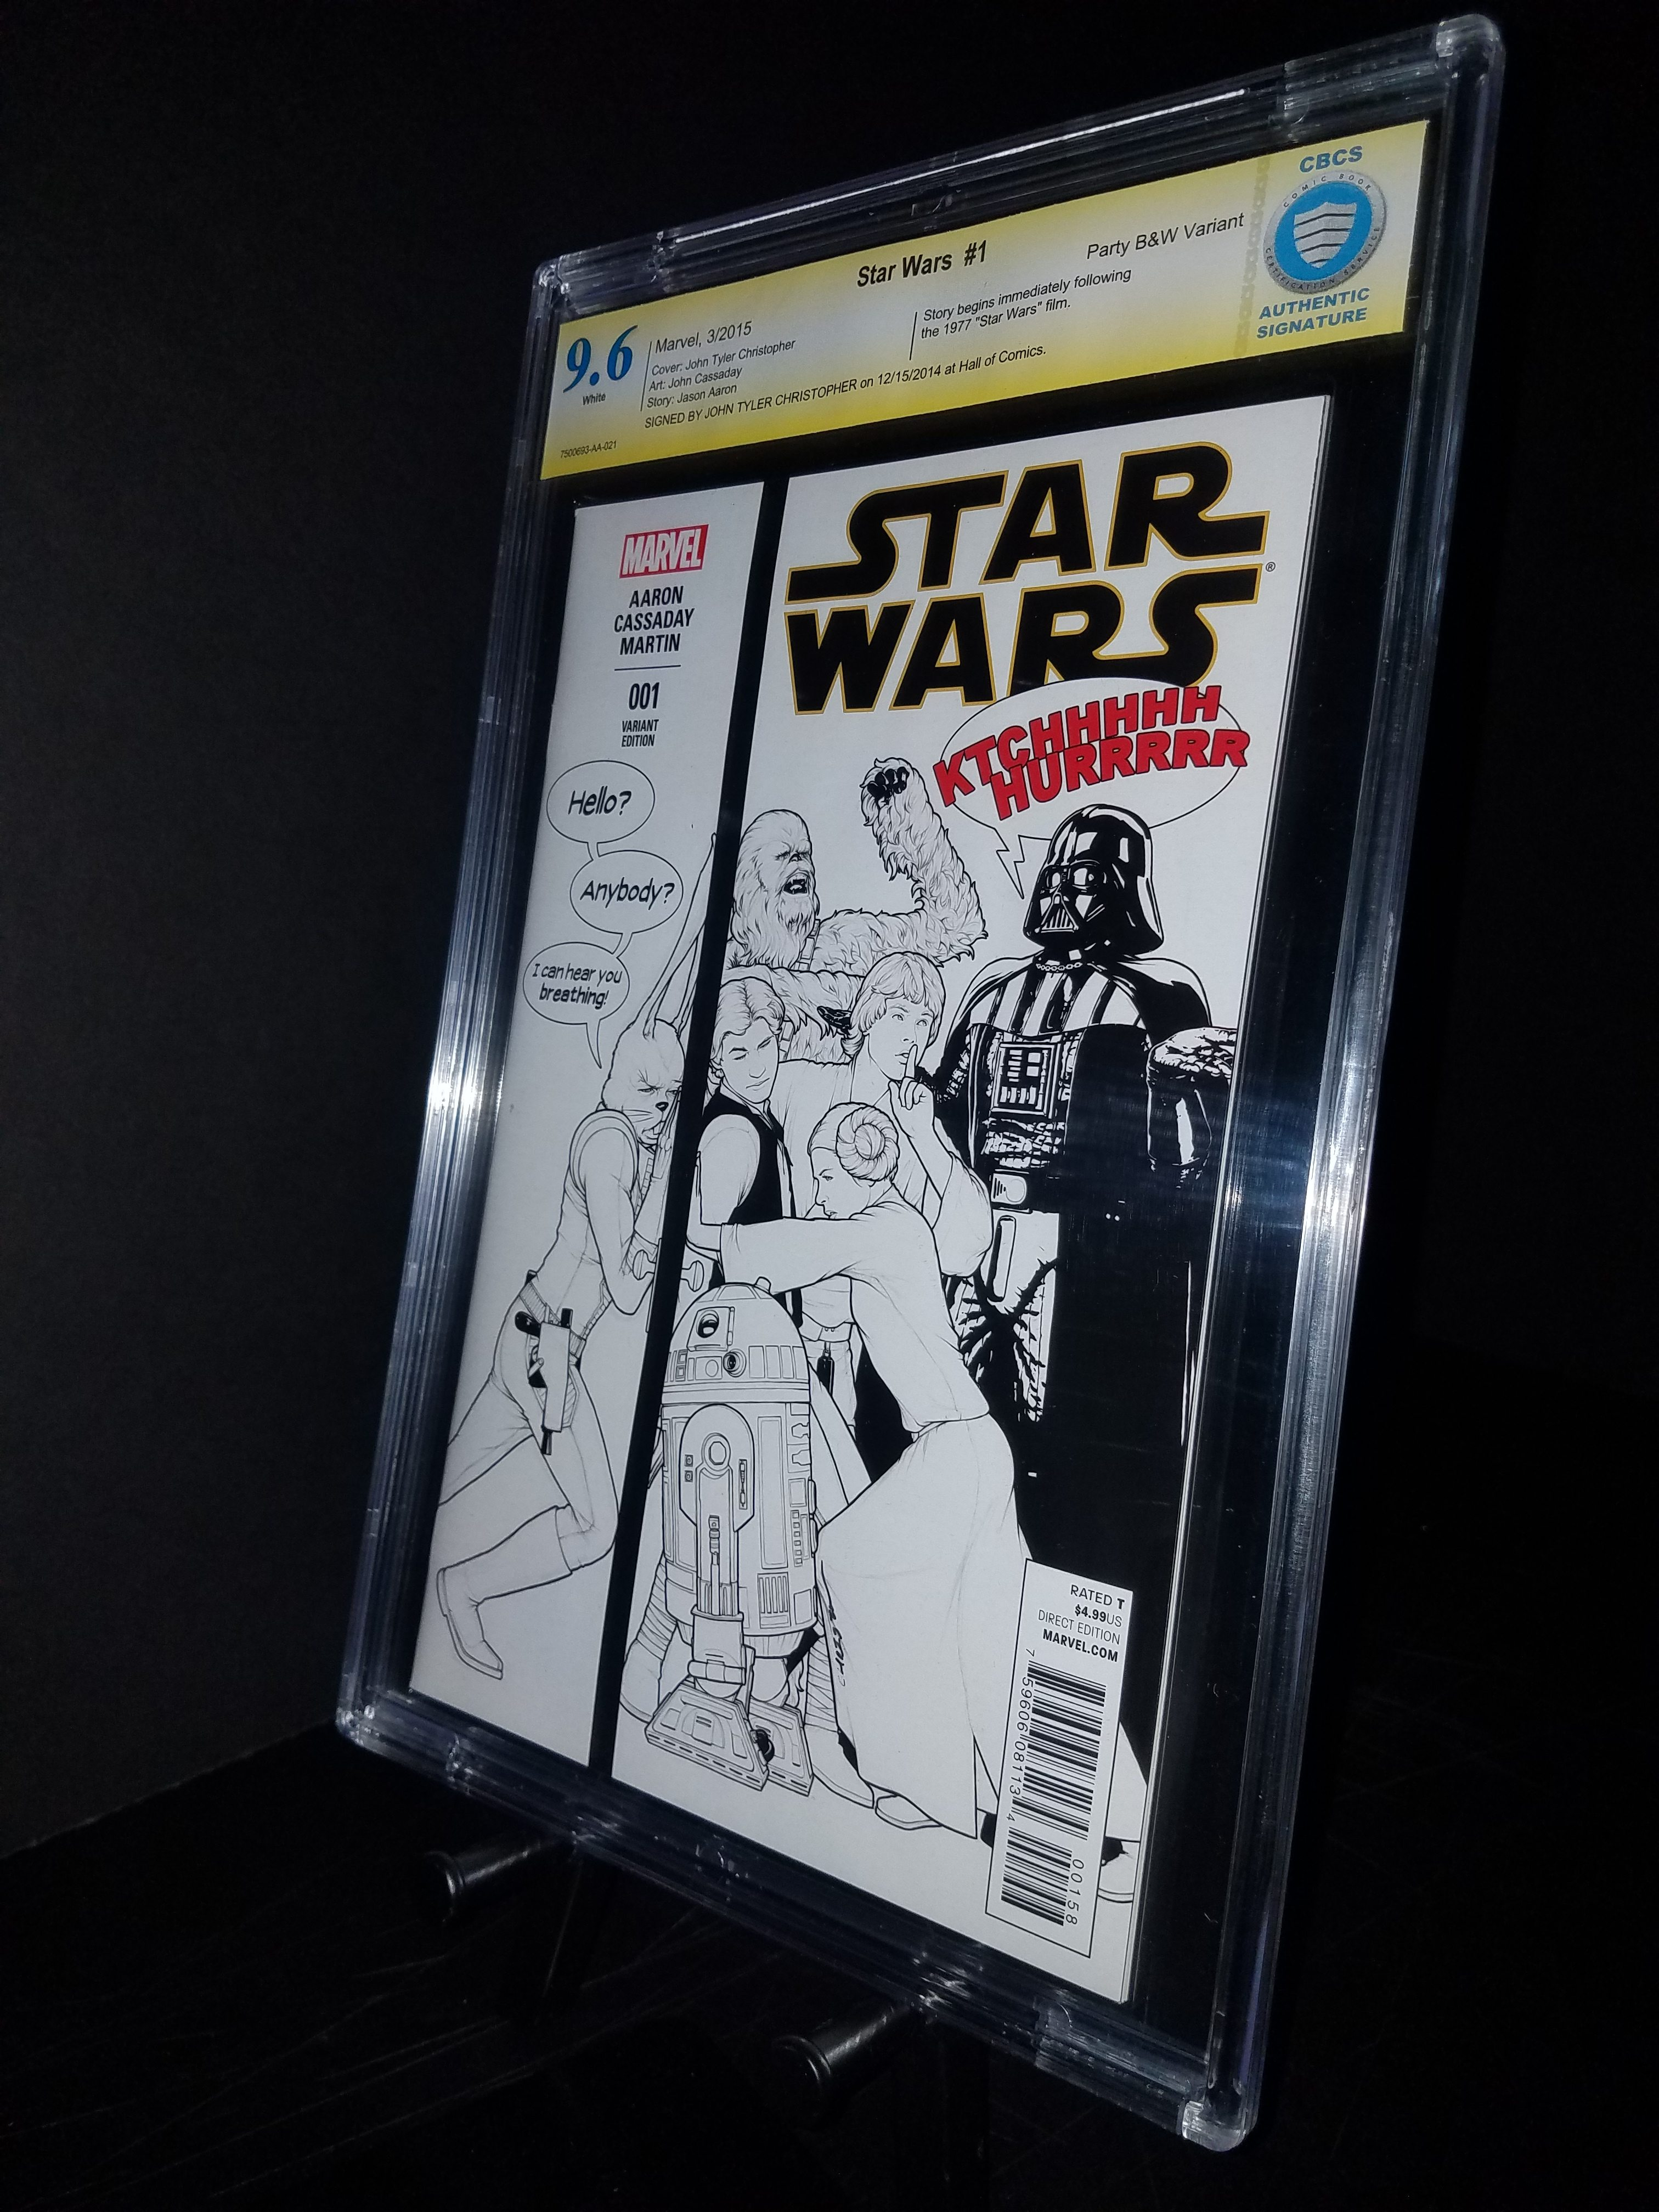 Star Wars # 1 CBCS 9.6 B&W Party Variant SS JTC